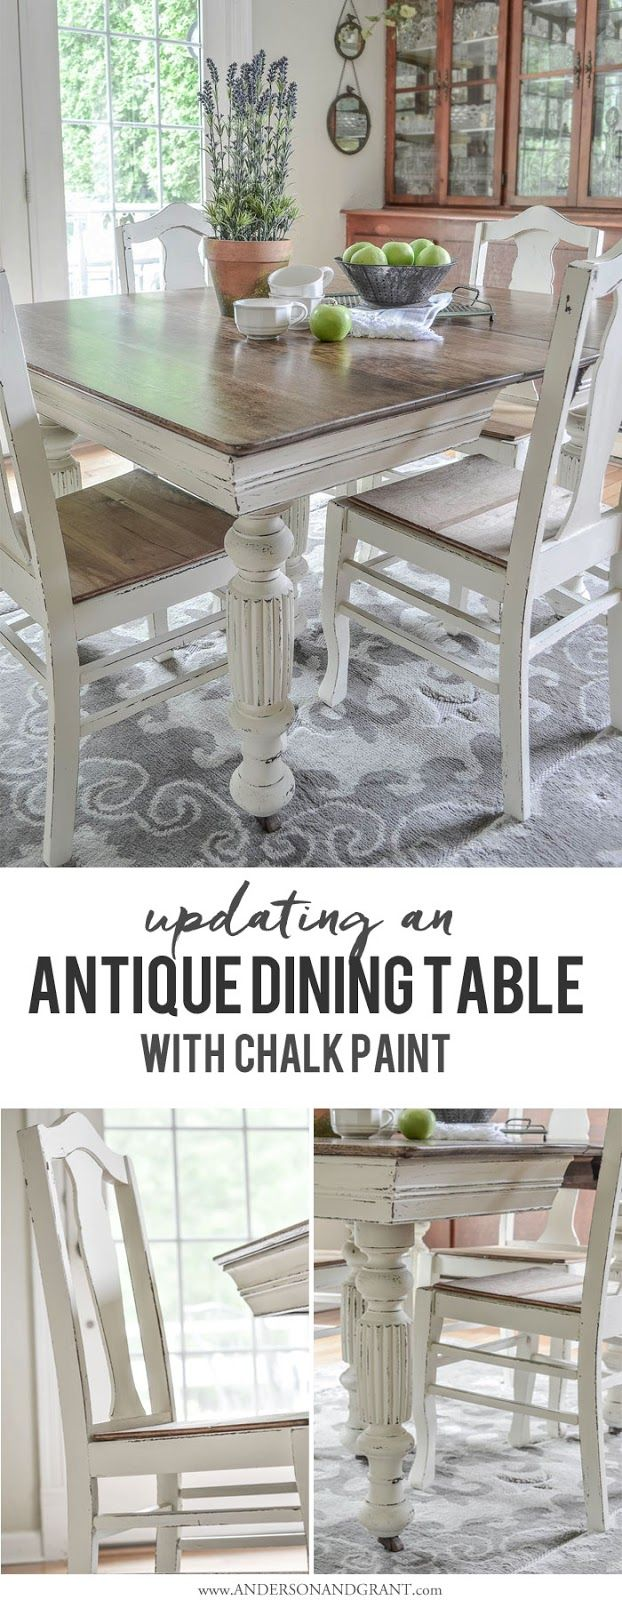 painted wood dining room chairs. antique dining table updated with chalk paint | tables, and furniture painted wood room chairs